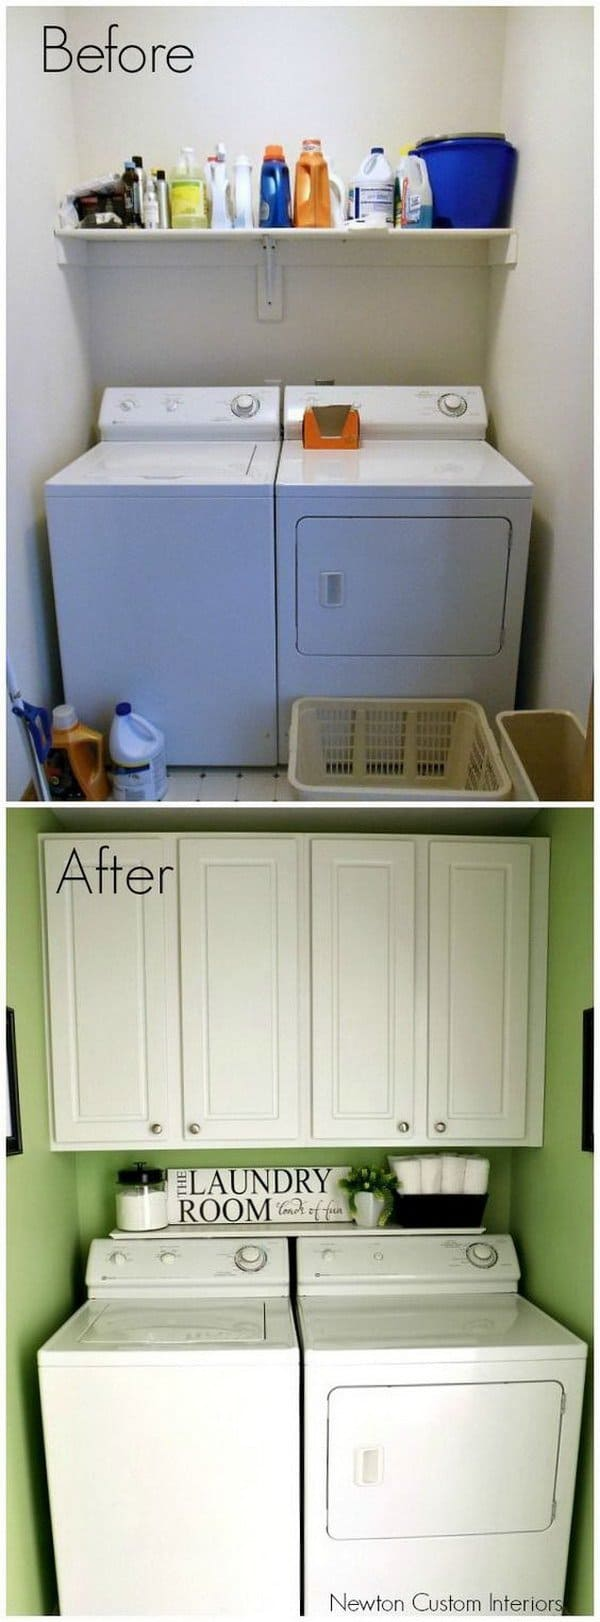 7 Small Space Makeovers: Awesome Before And After Laundry Room Makeovers • AwesomeJelly.com